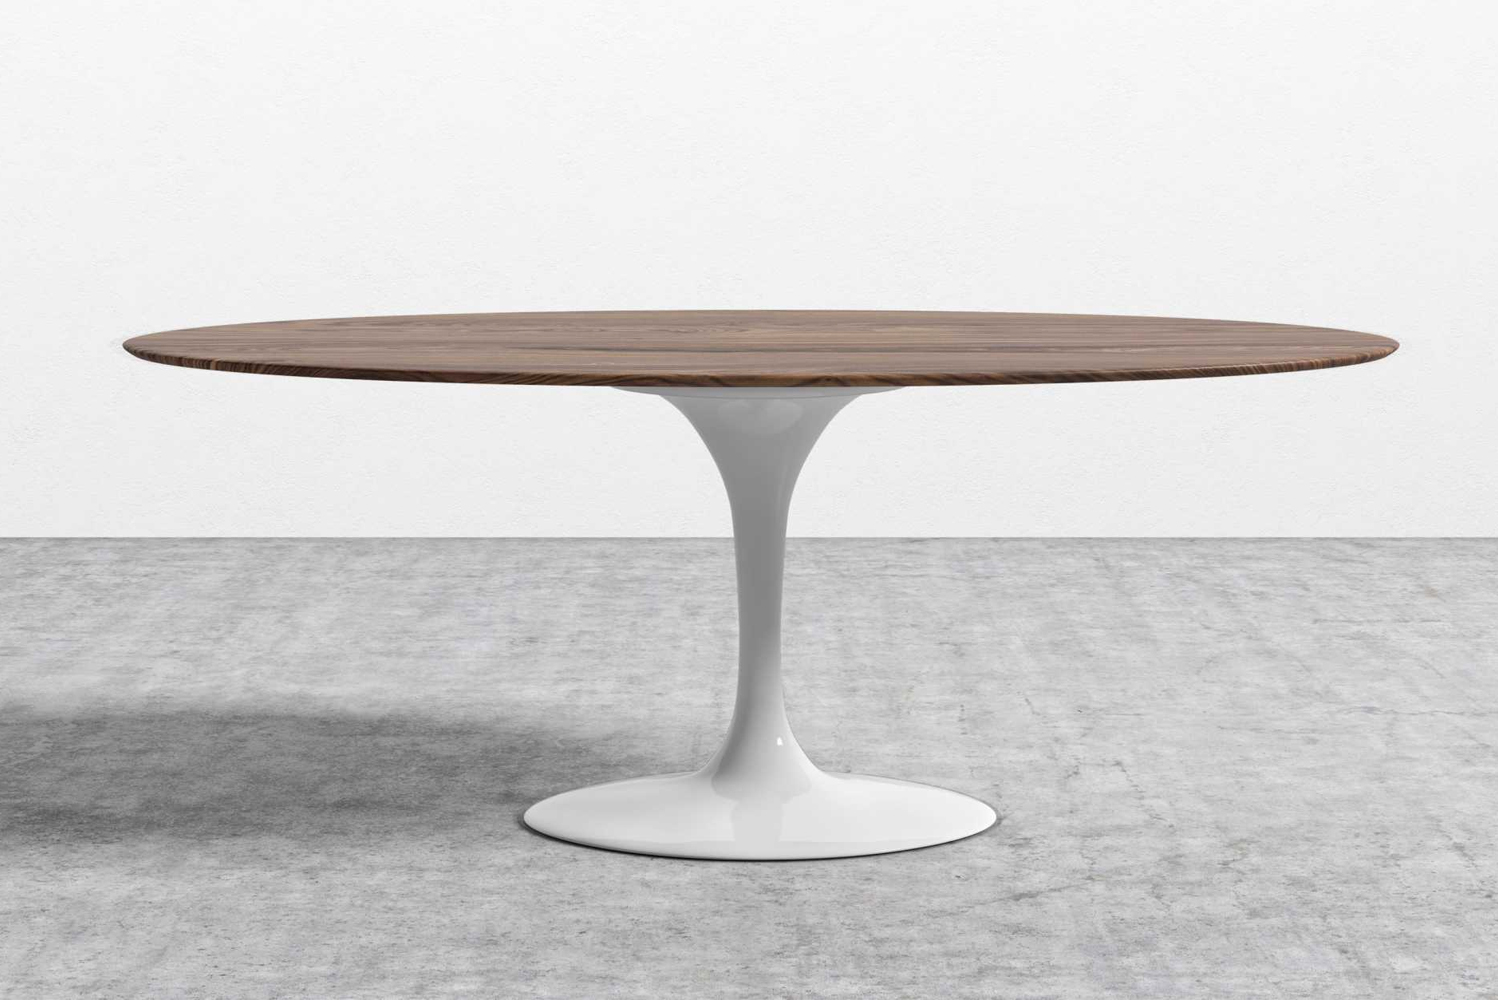 Rove Concepts announced the Tulip table series, which was inspired by Finnish and American mid-century architecture.